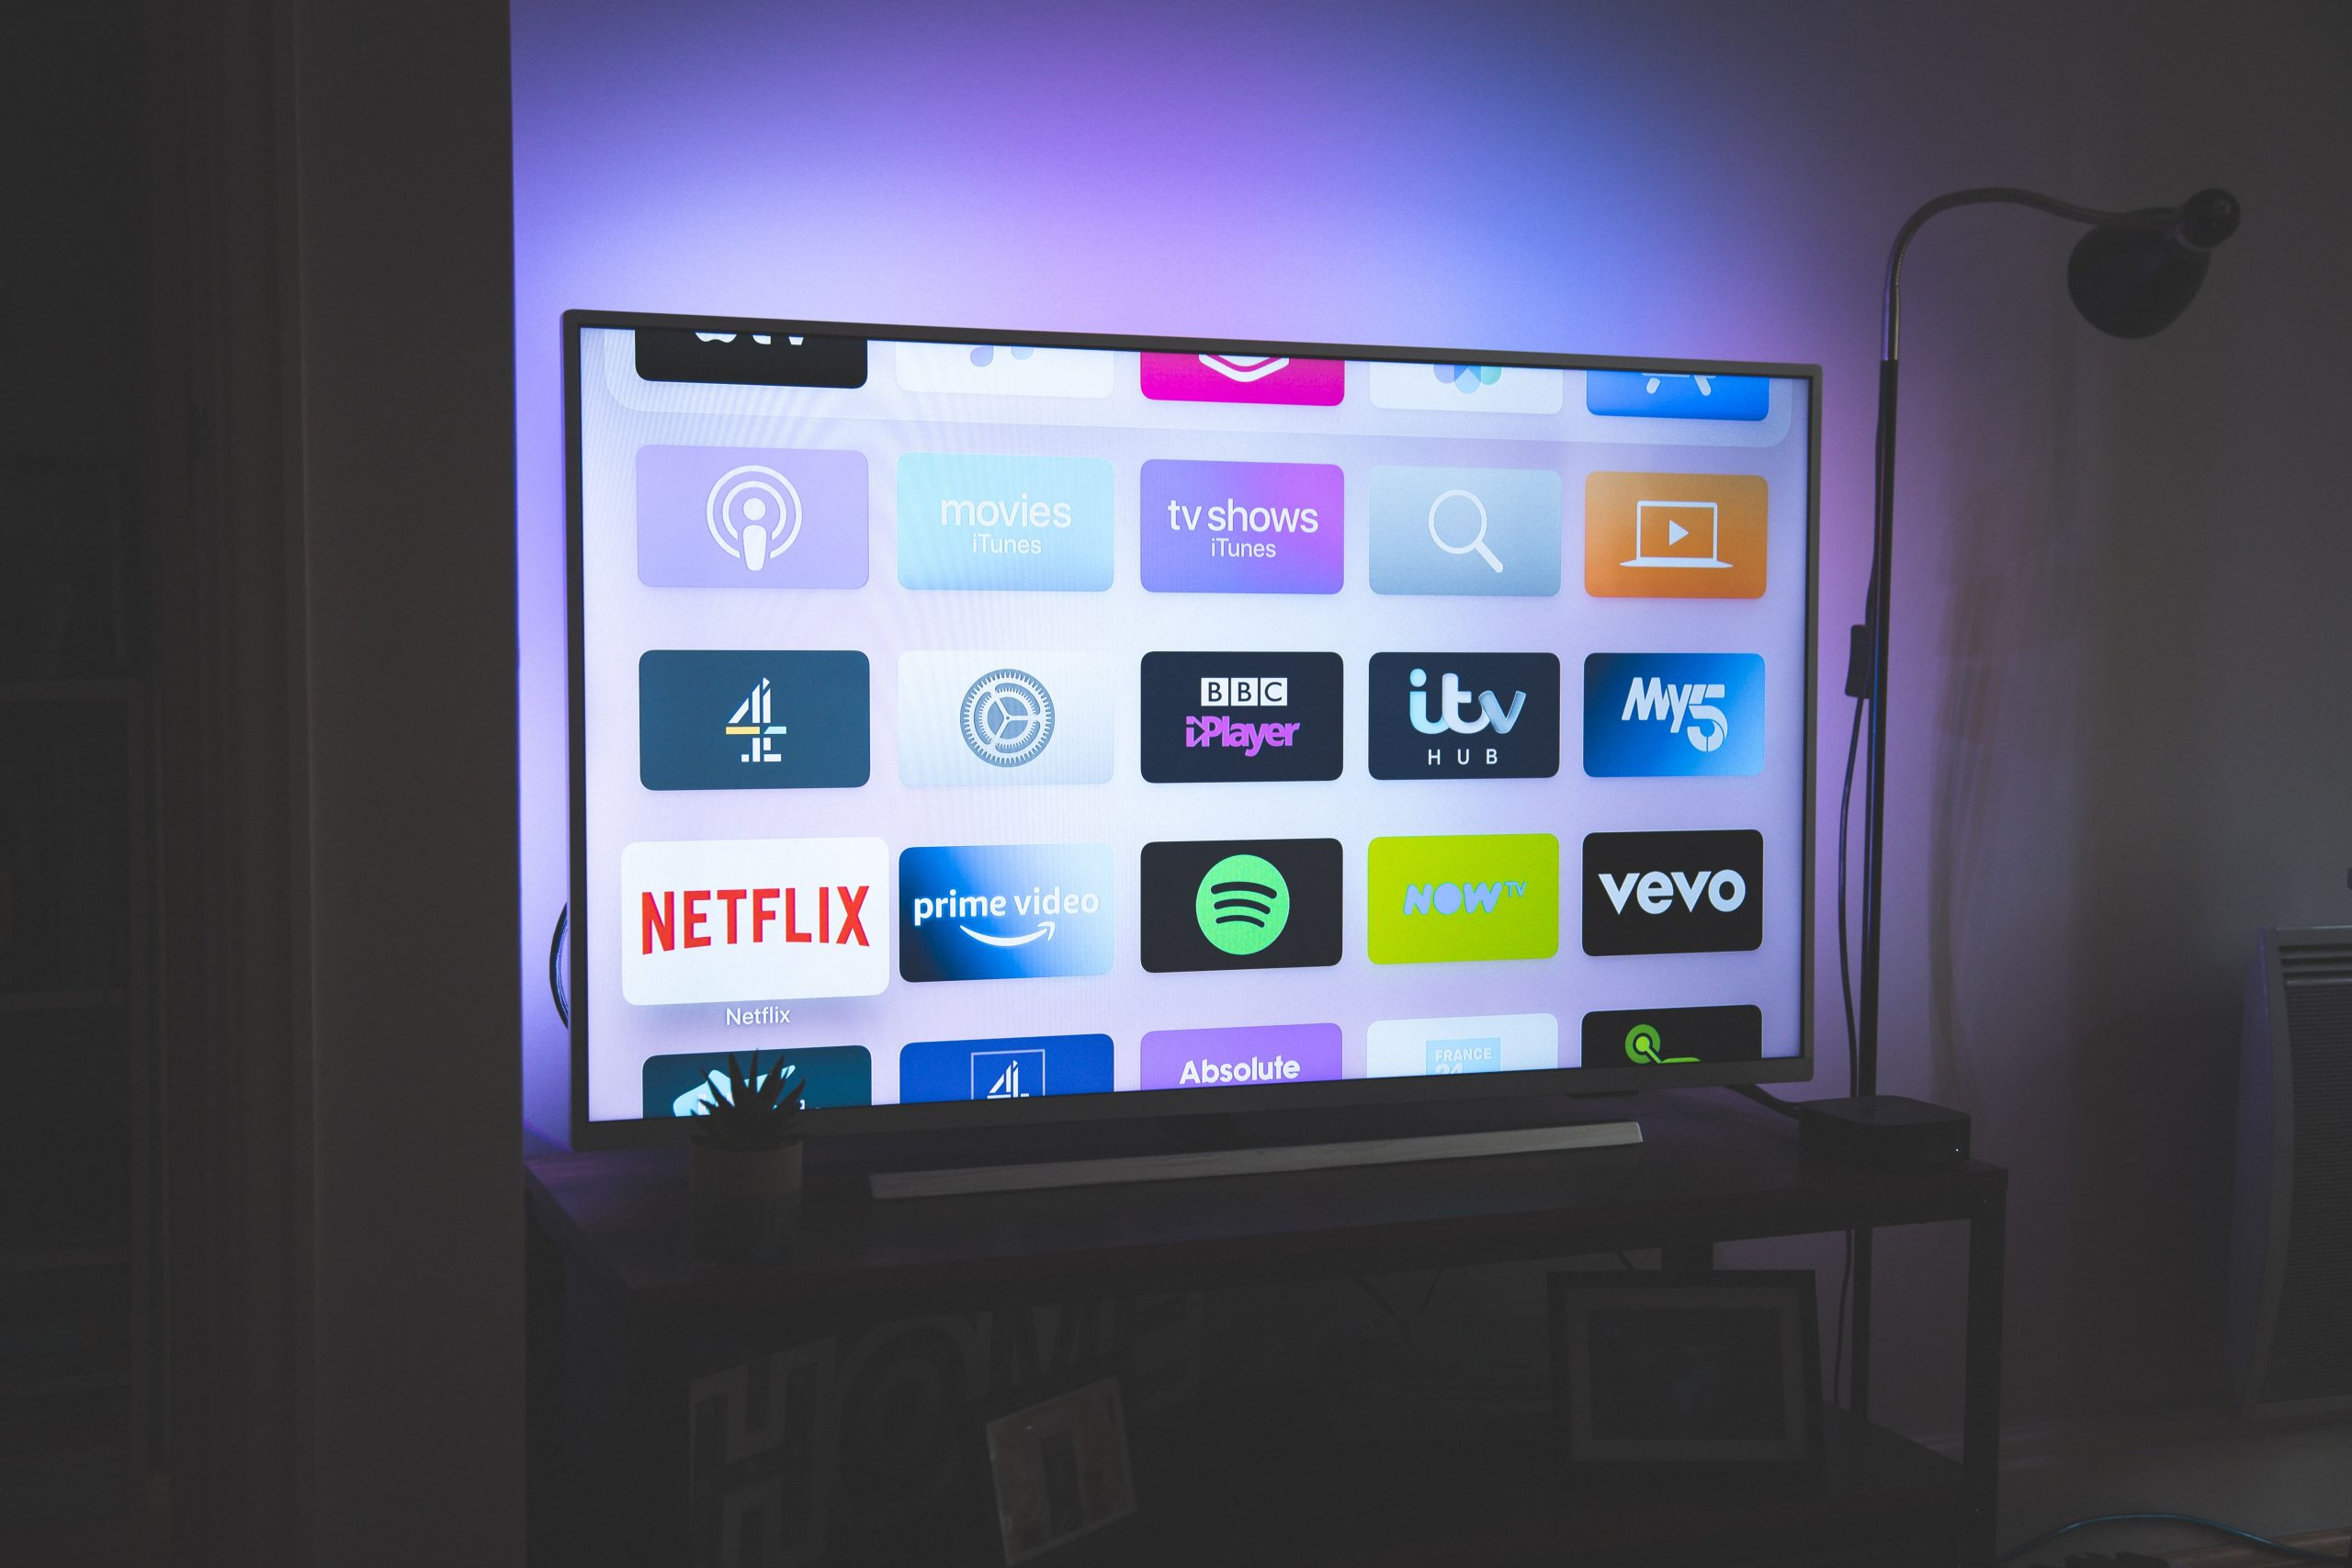 A smart TV with a number of TV apps displayed on the screen.